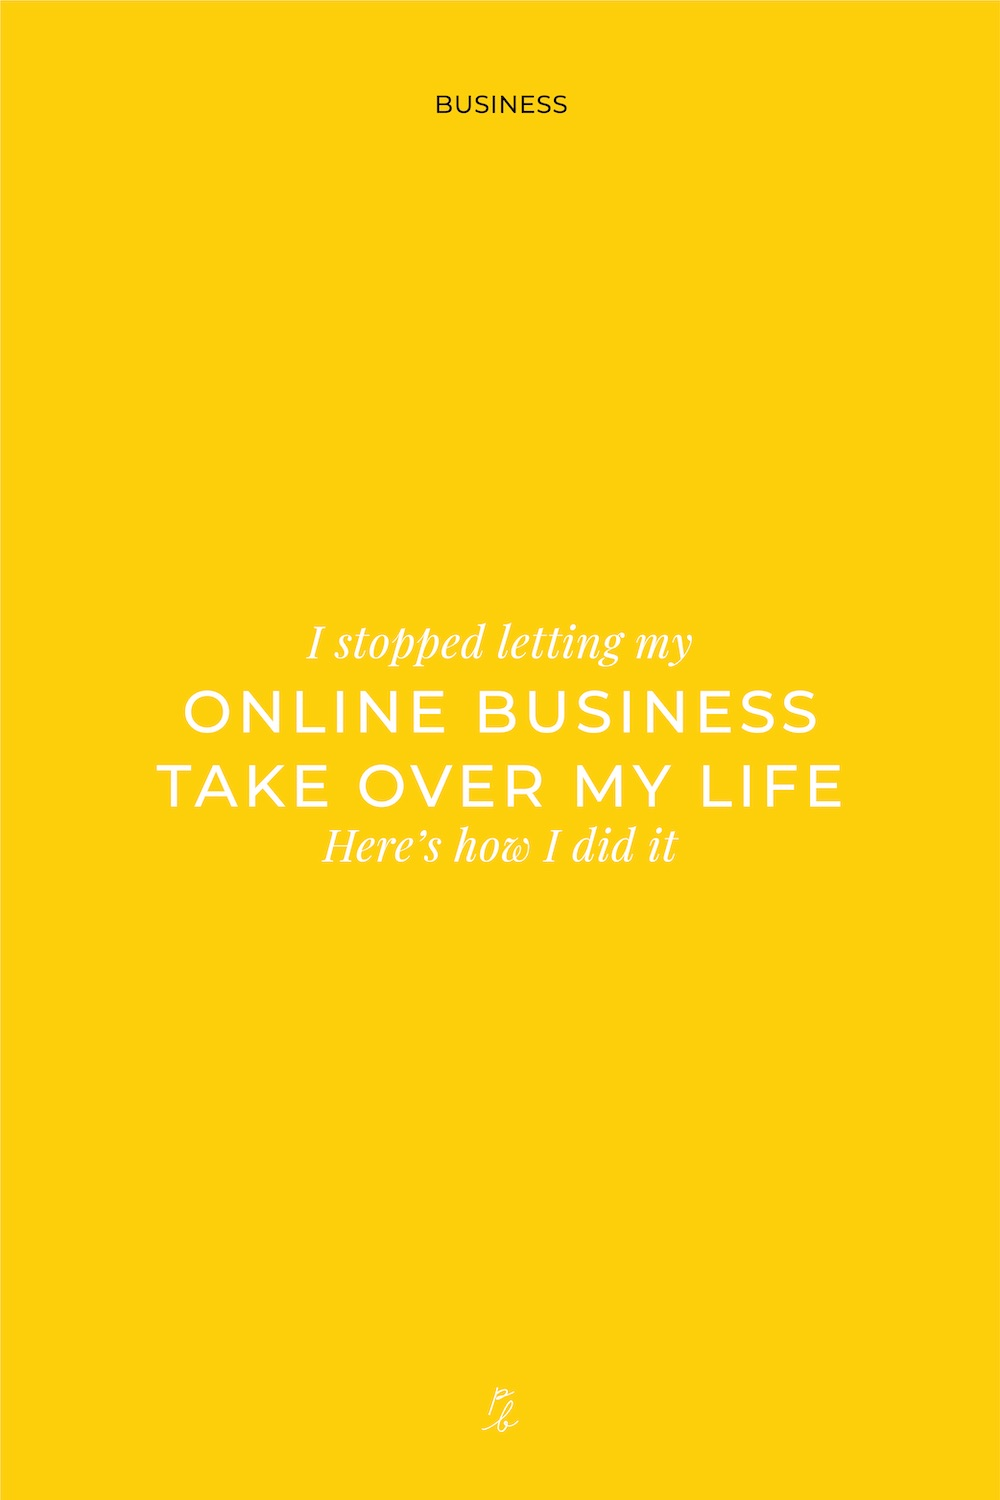 5-I stopped letting my online business take over my life--Here's how I did it.jpg